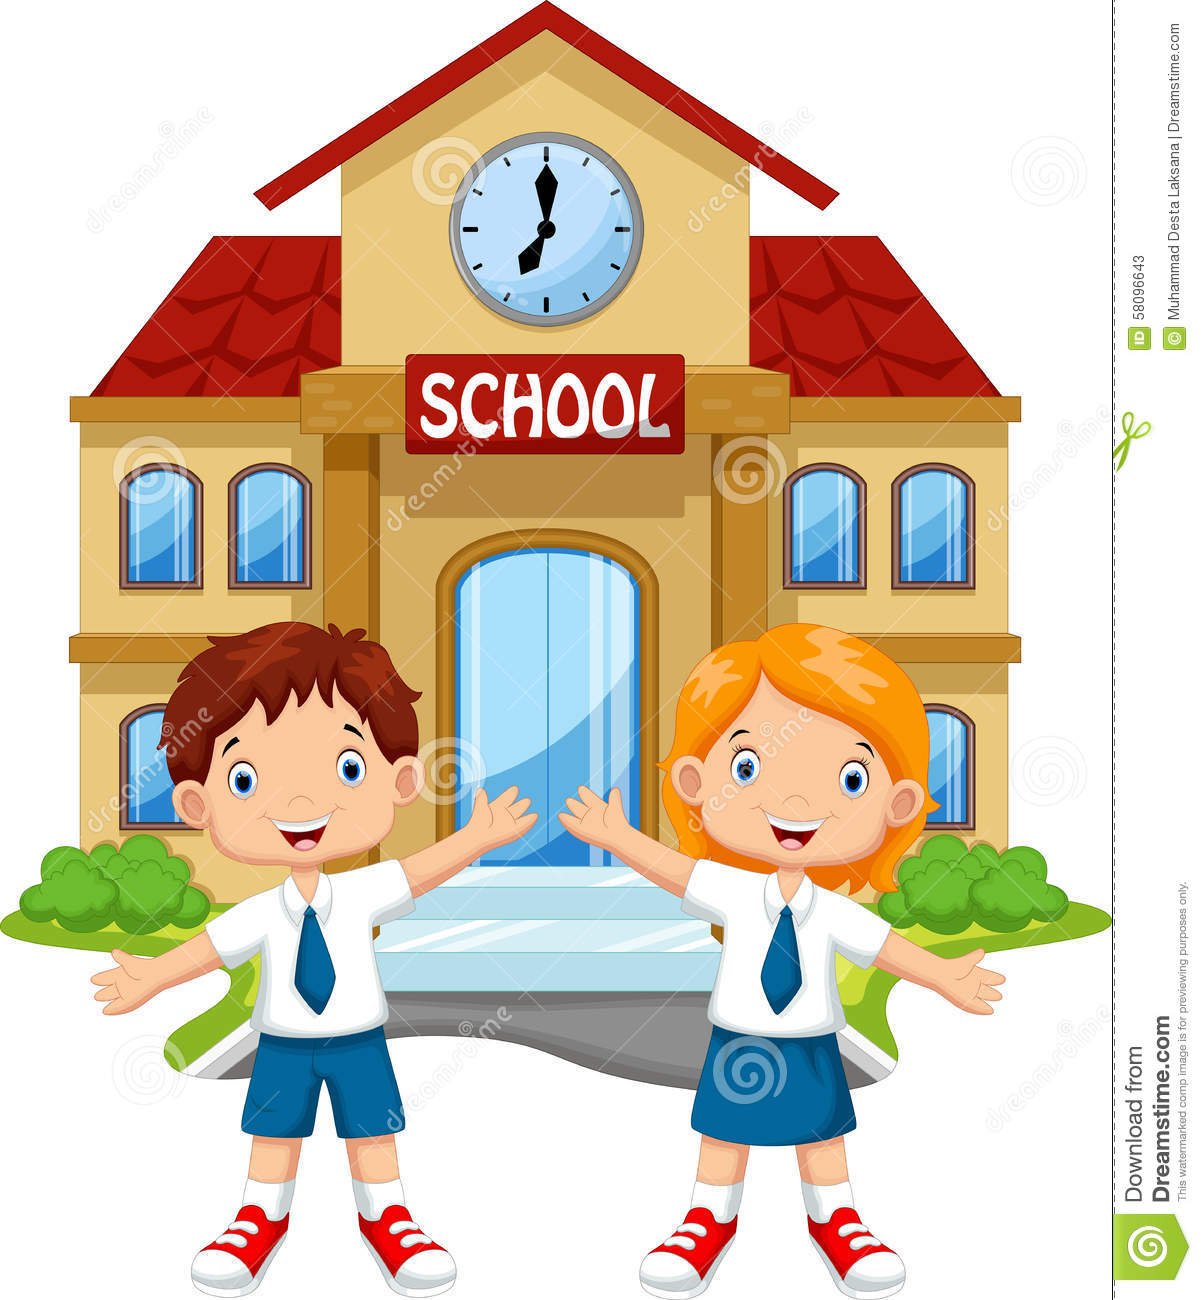 cute school kids cartoon - Cartoon Pictures For Kids